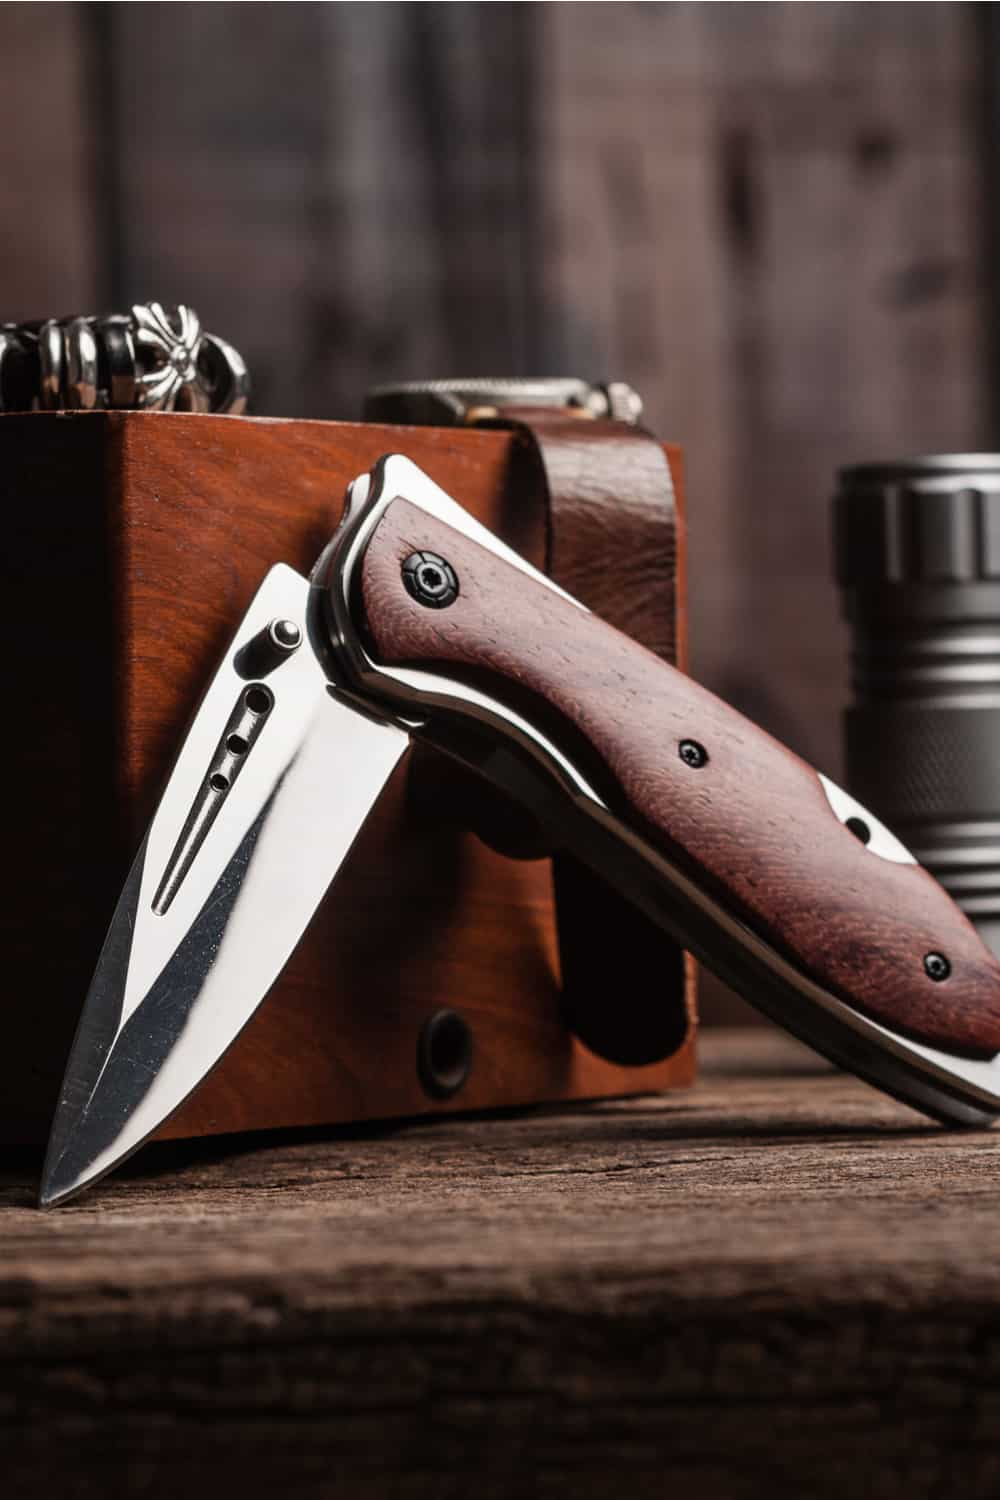 15 Homemade Folding Knife Ideas You Can DIY Easily